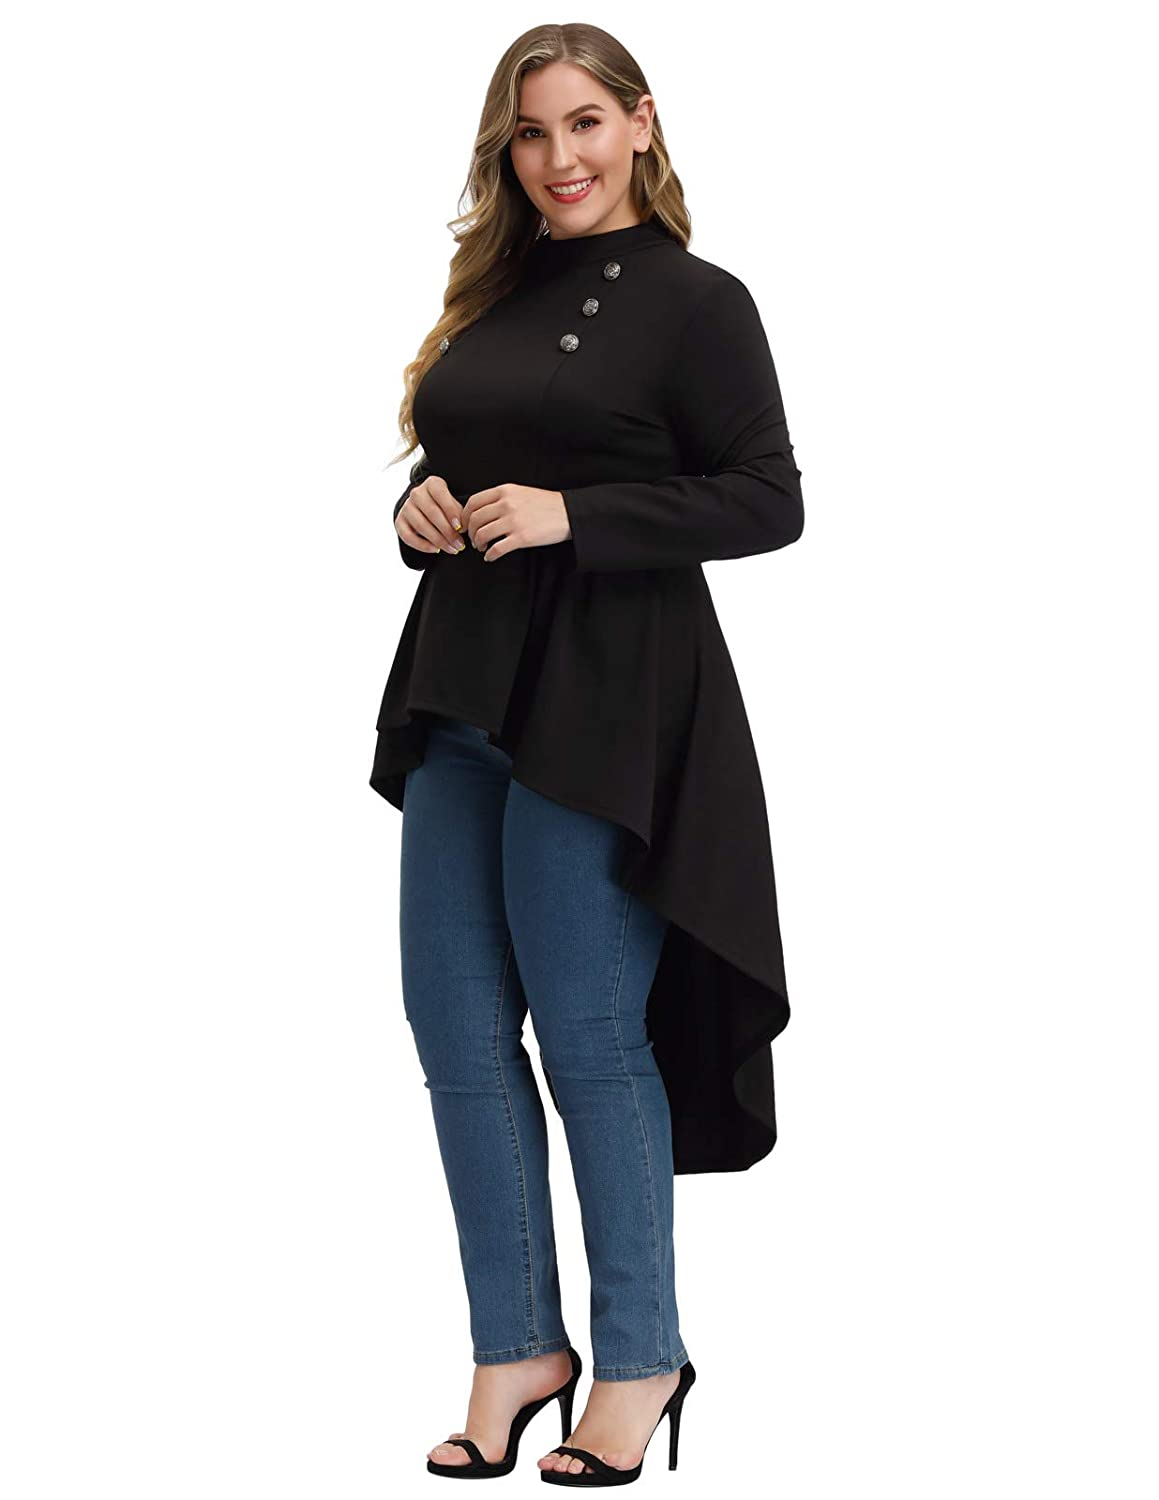 Steampunk Jacket | Steampunk Coat, Overcoat, Cape Woman Plus Size Steampunk Shirt Gothic Victorian Long Sleeve Blouse Top $30.99 AT vintagedancer.com